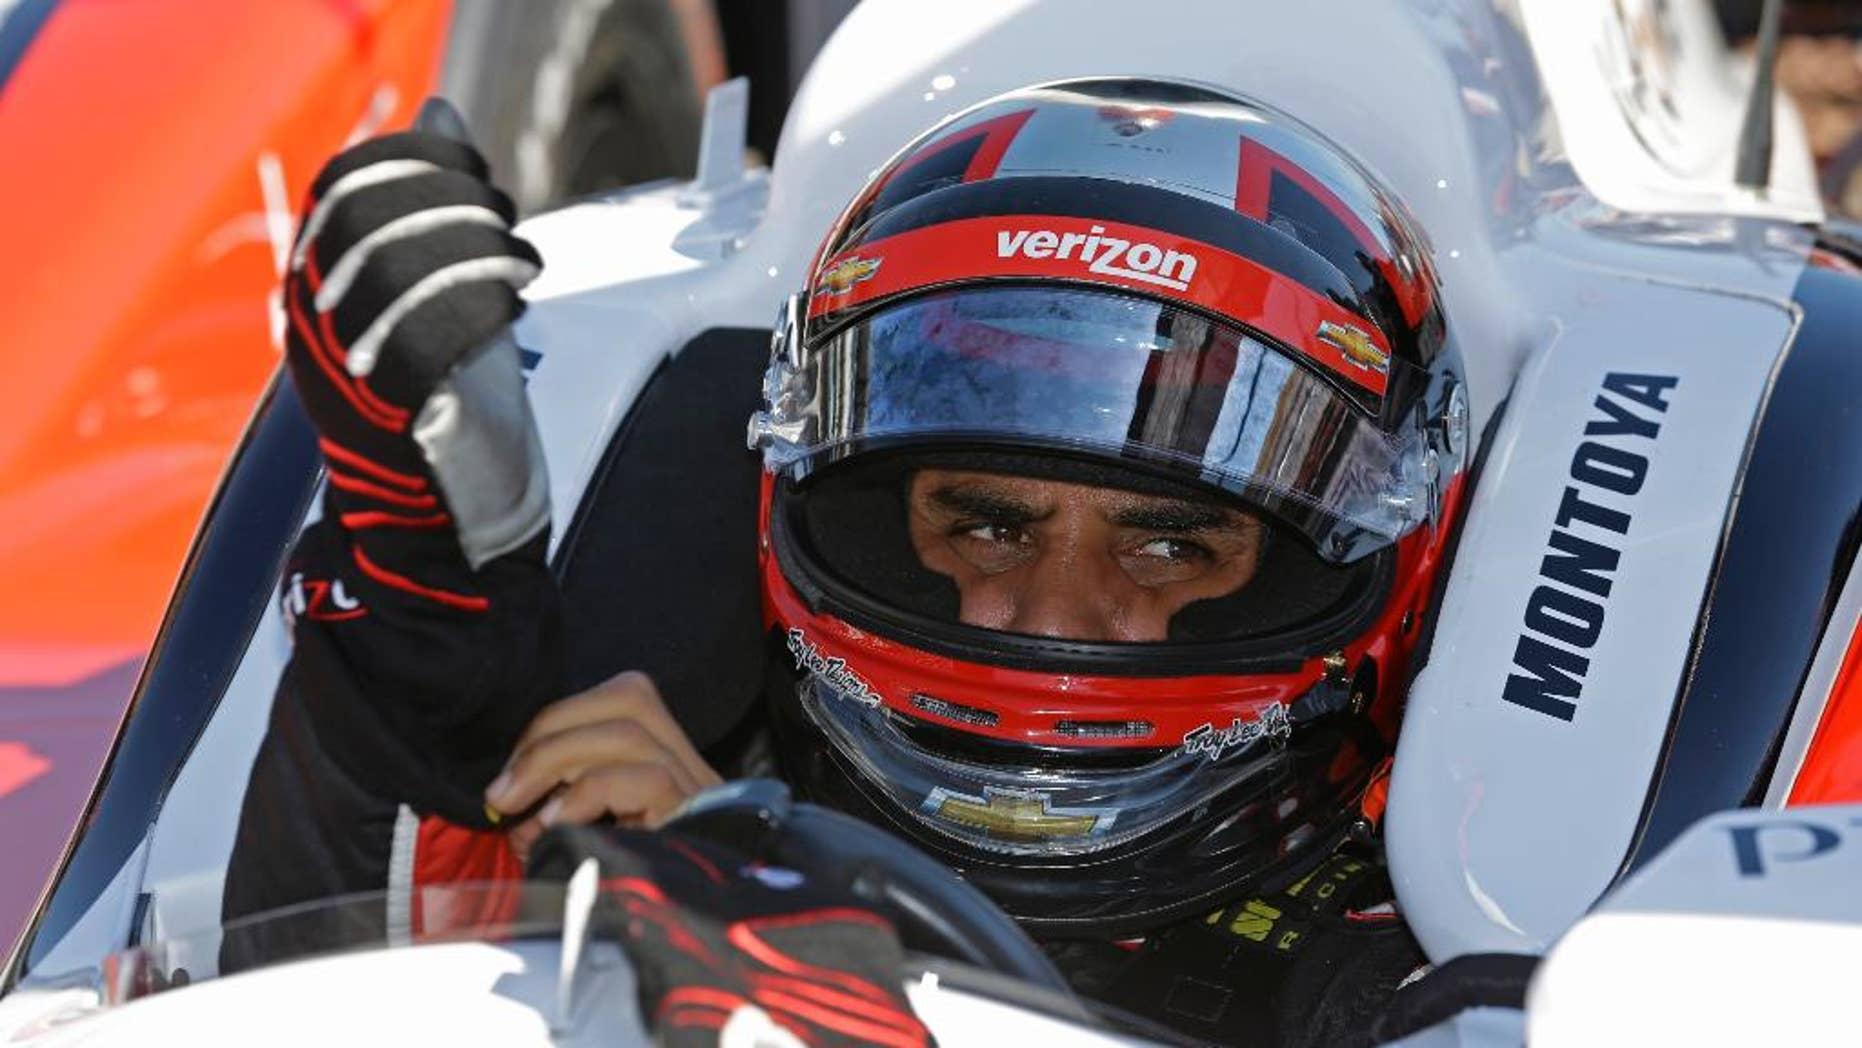 Juan Pablo Montoya, of Colombia, puts on his gloves as he prepares to drive on the final day of practice for the Indianapolis 500 IndyCar auto race at the Indianapolis Motor Speedway in Indianapolis, Friday, May 23, 2014. The 98th running of the Indianapolis 500 is Sunday. (AP Photo/Michael Conroy)